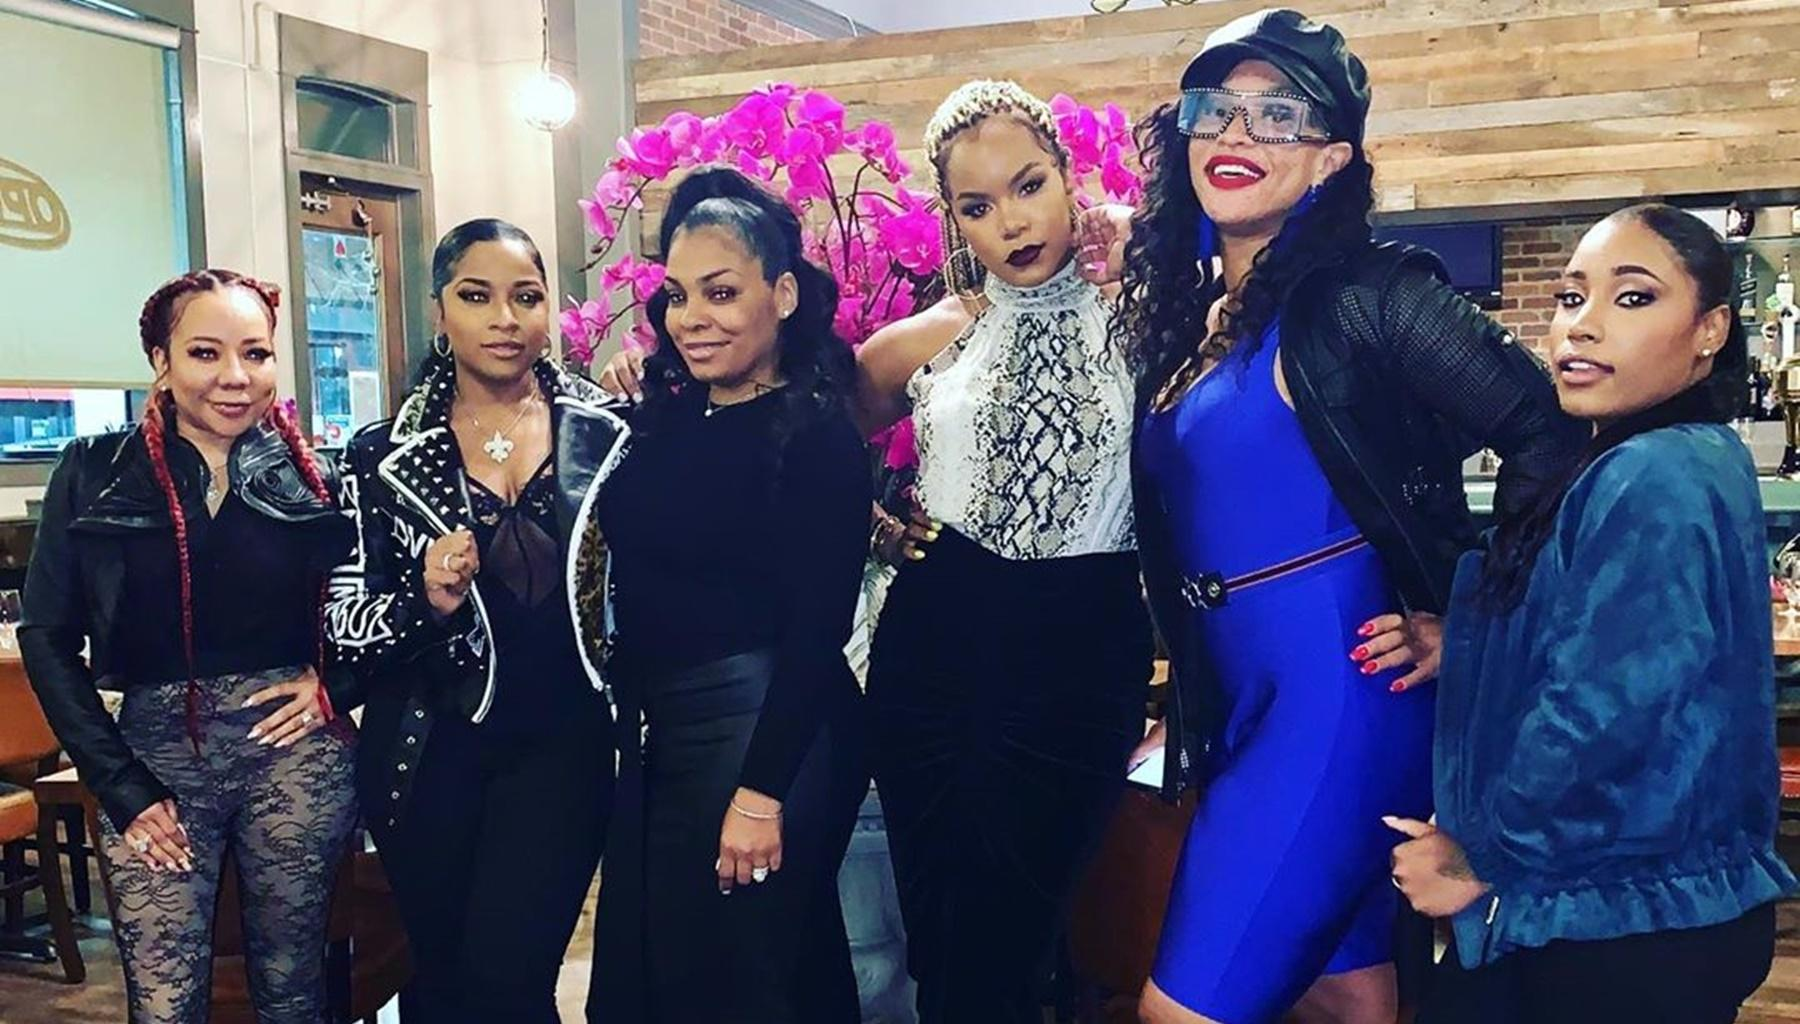 Tiny Harris And Several Of Her Friends Go Wild For Ladies' Night And Toya Wright's Little Sister Stole The Show In The Photos For An Unexpected Reason